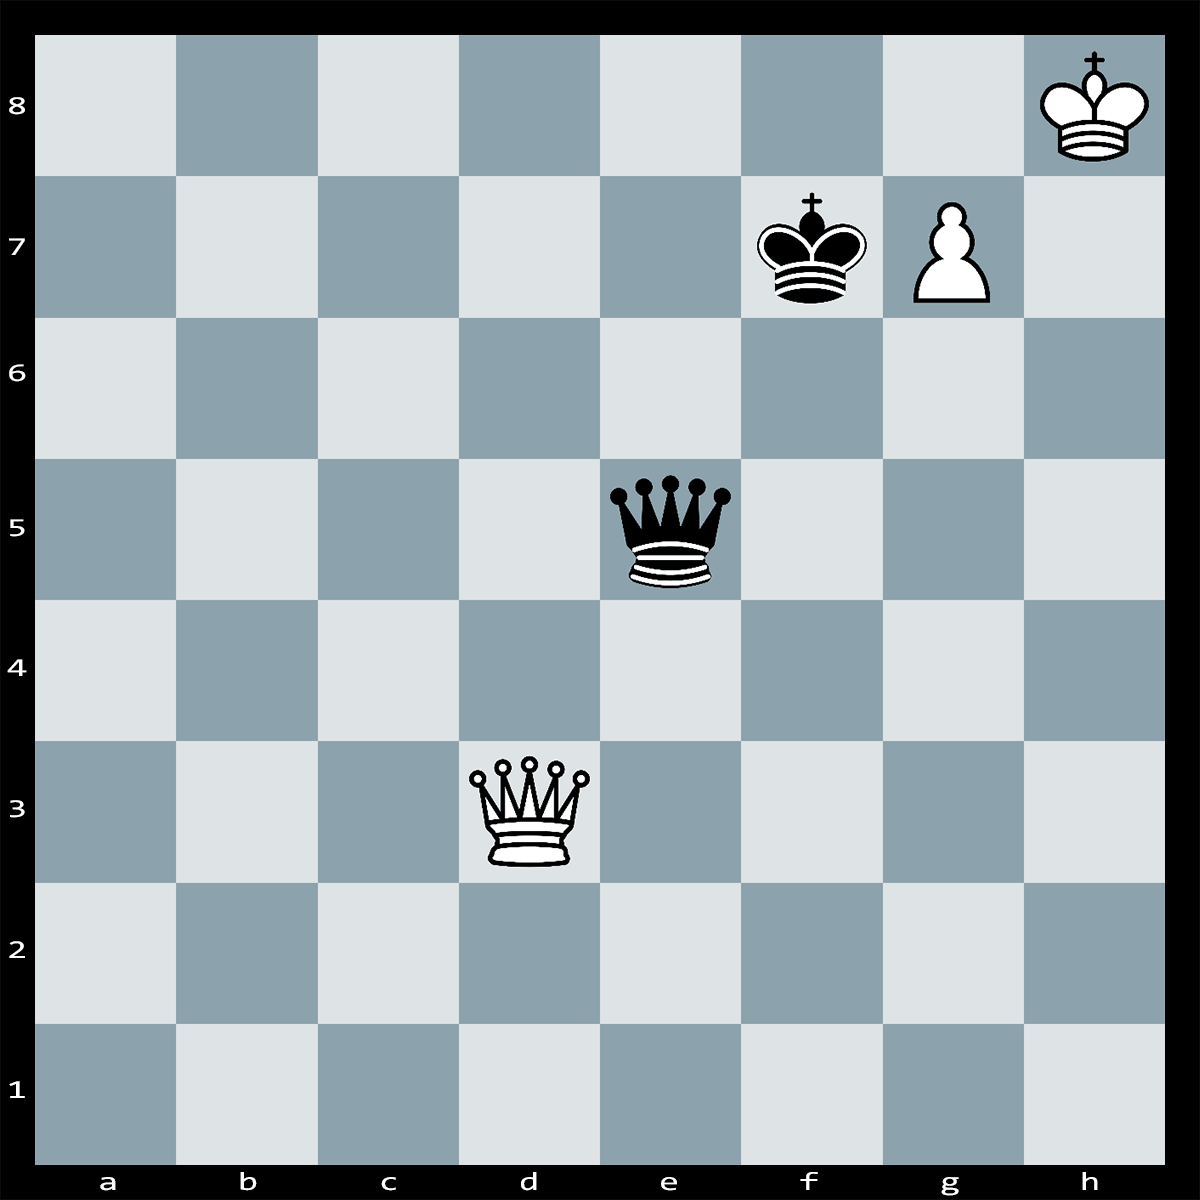 What is the Best Move to Achieve Victory, White to Play